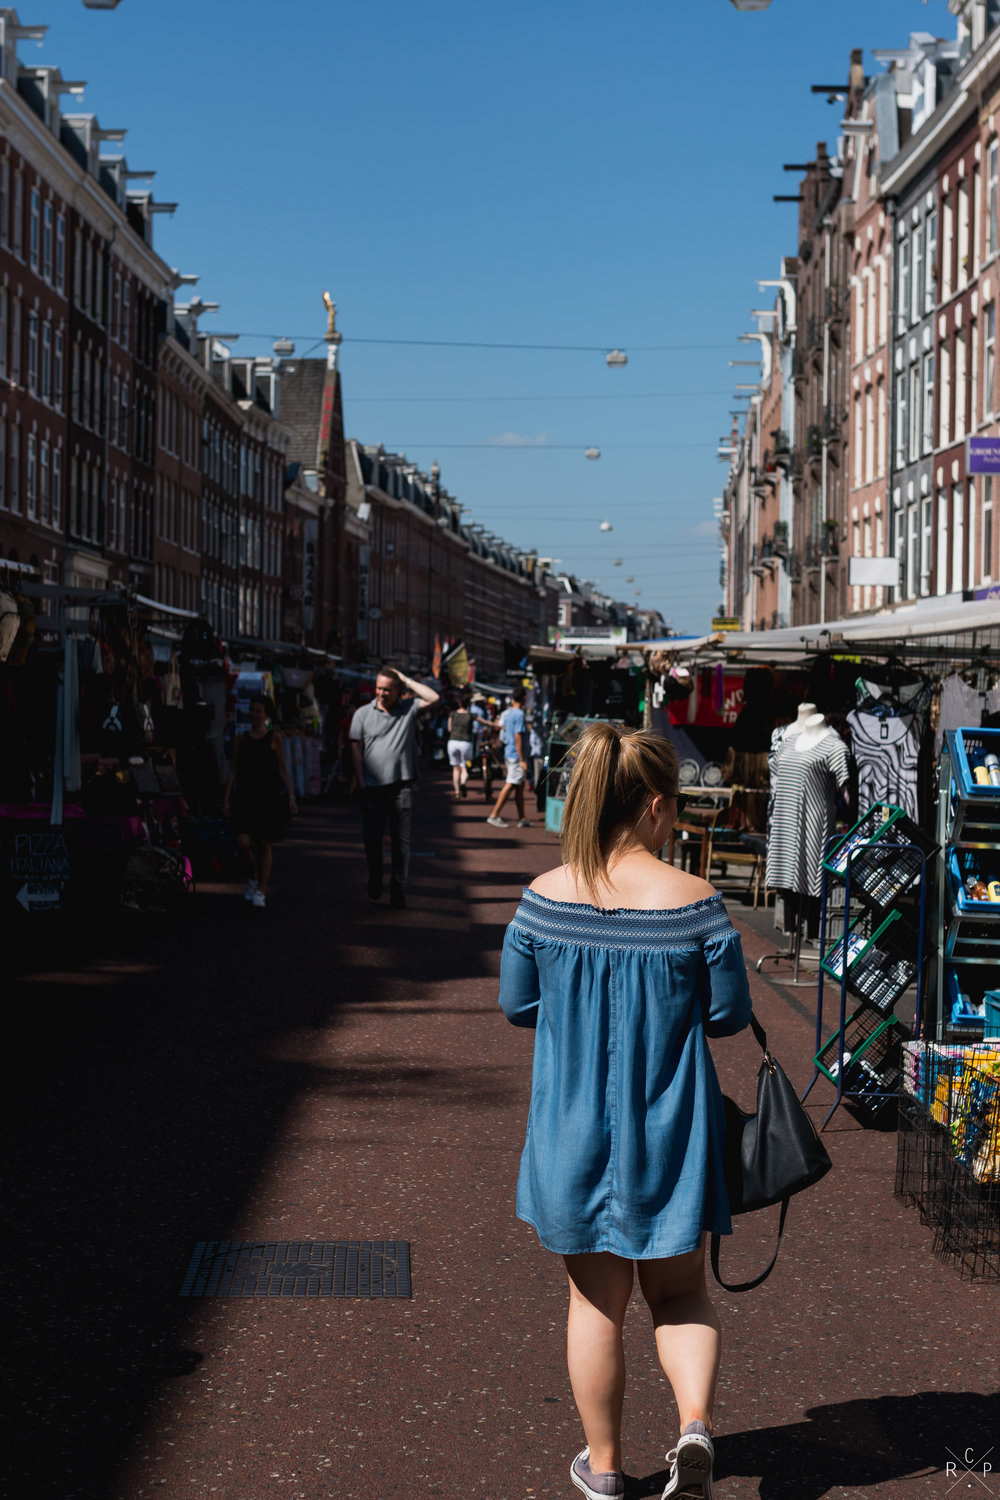 Monday Market - Amsterdam, Holland 19/06/2017